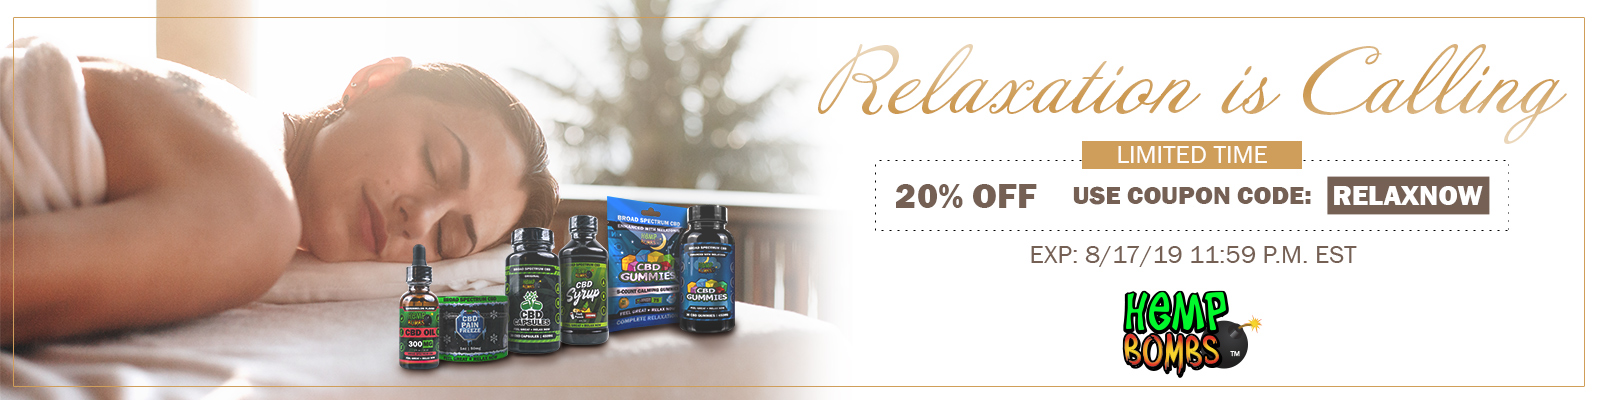 CBD For Relaxation discounts